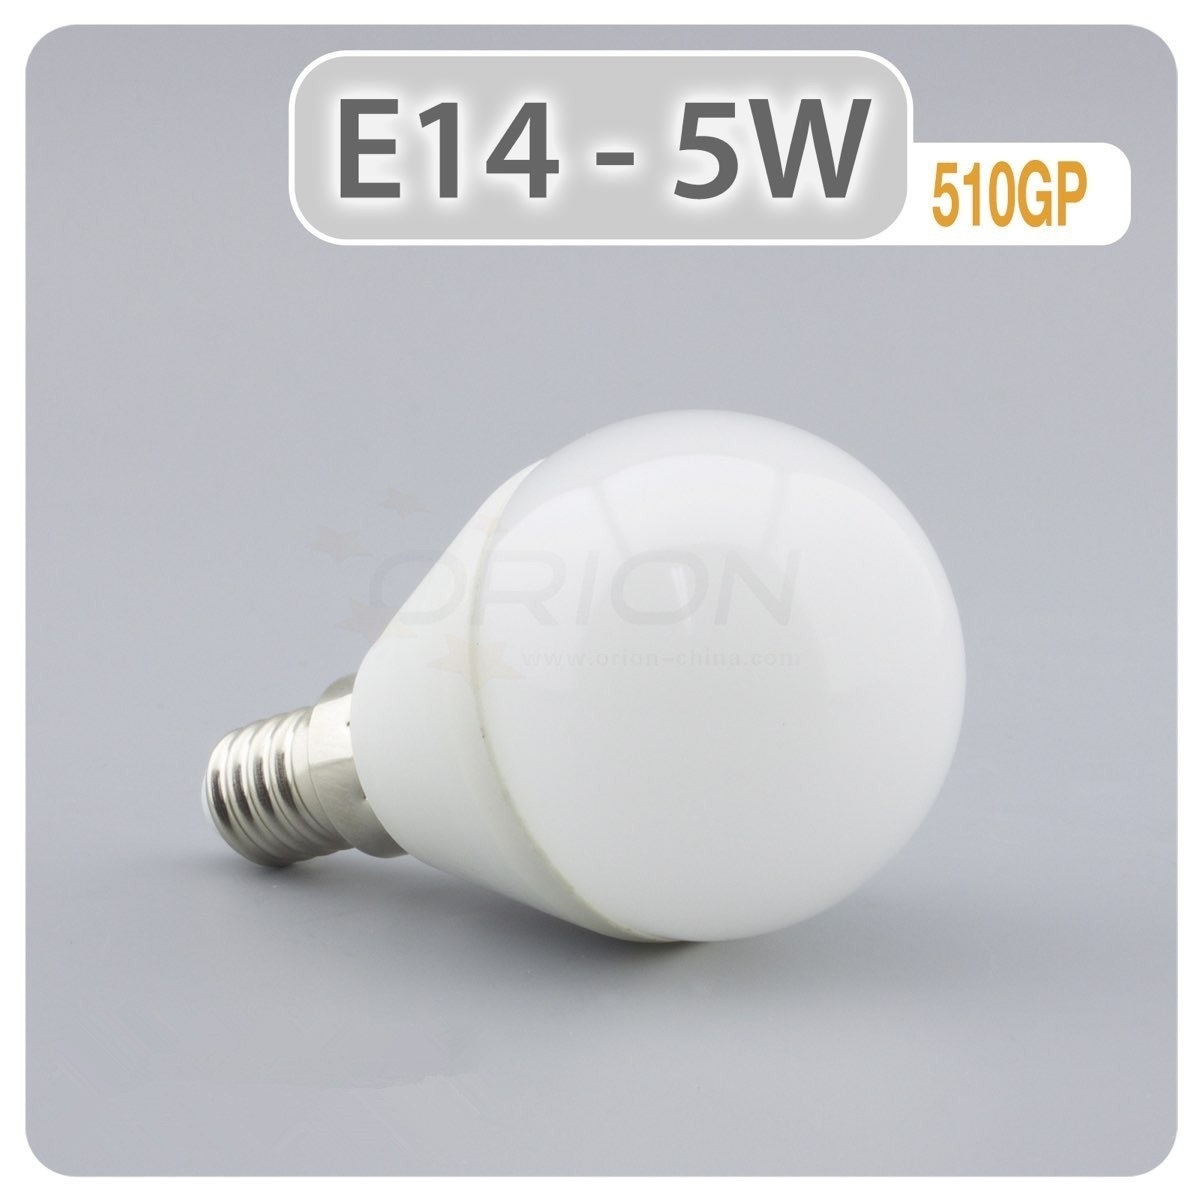 5 Watt Led China Energy Saving Light G45 E27 5 Watt Led Bulb Photos